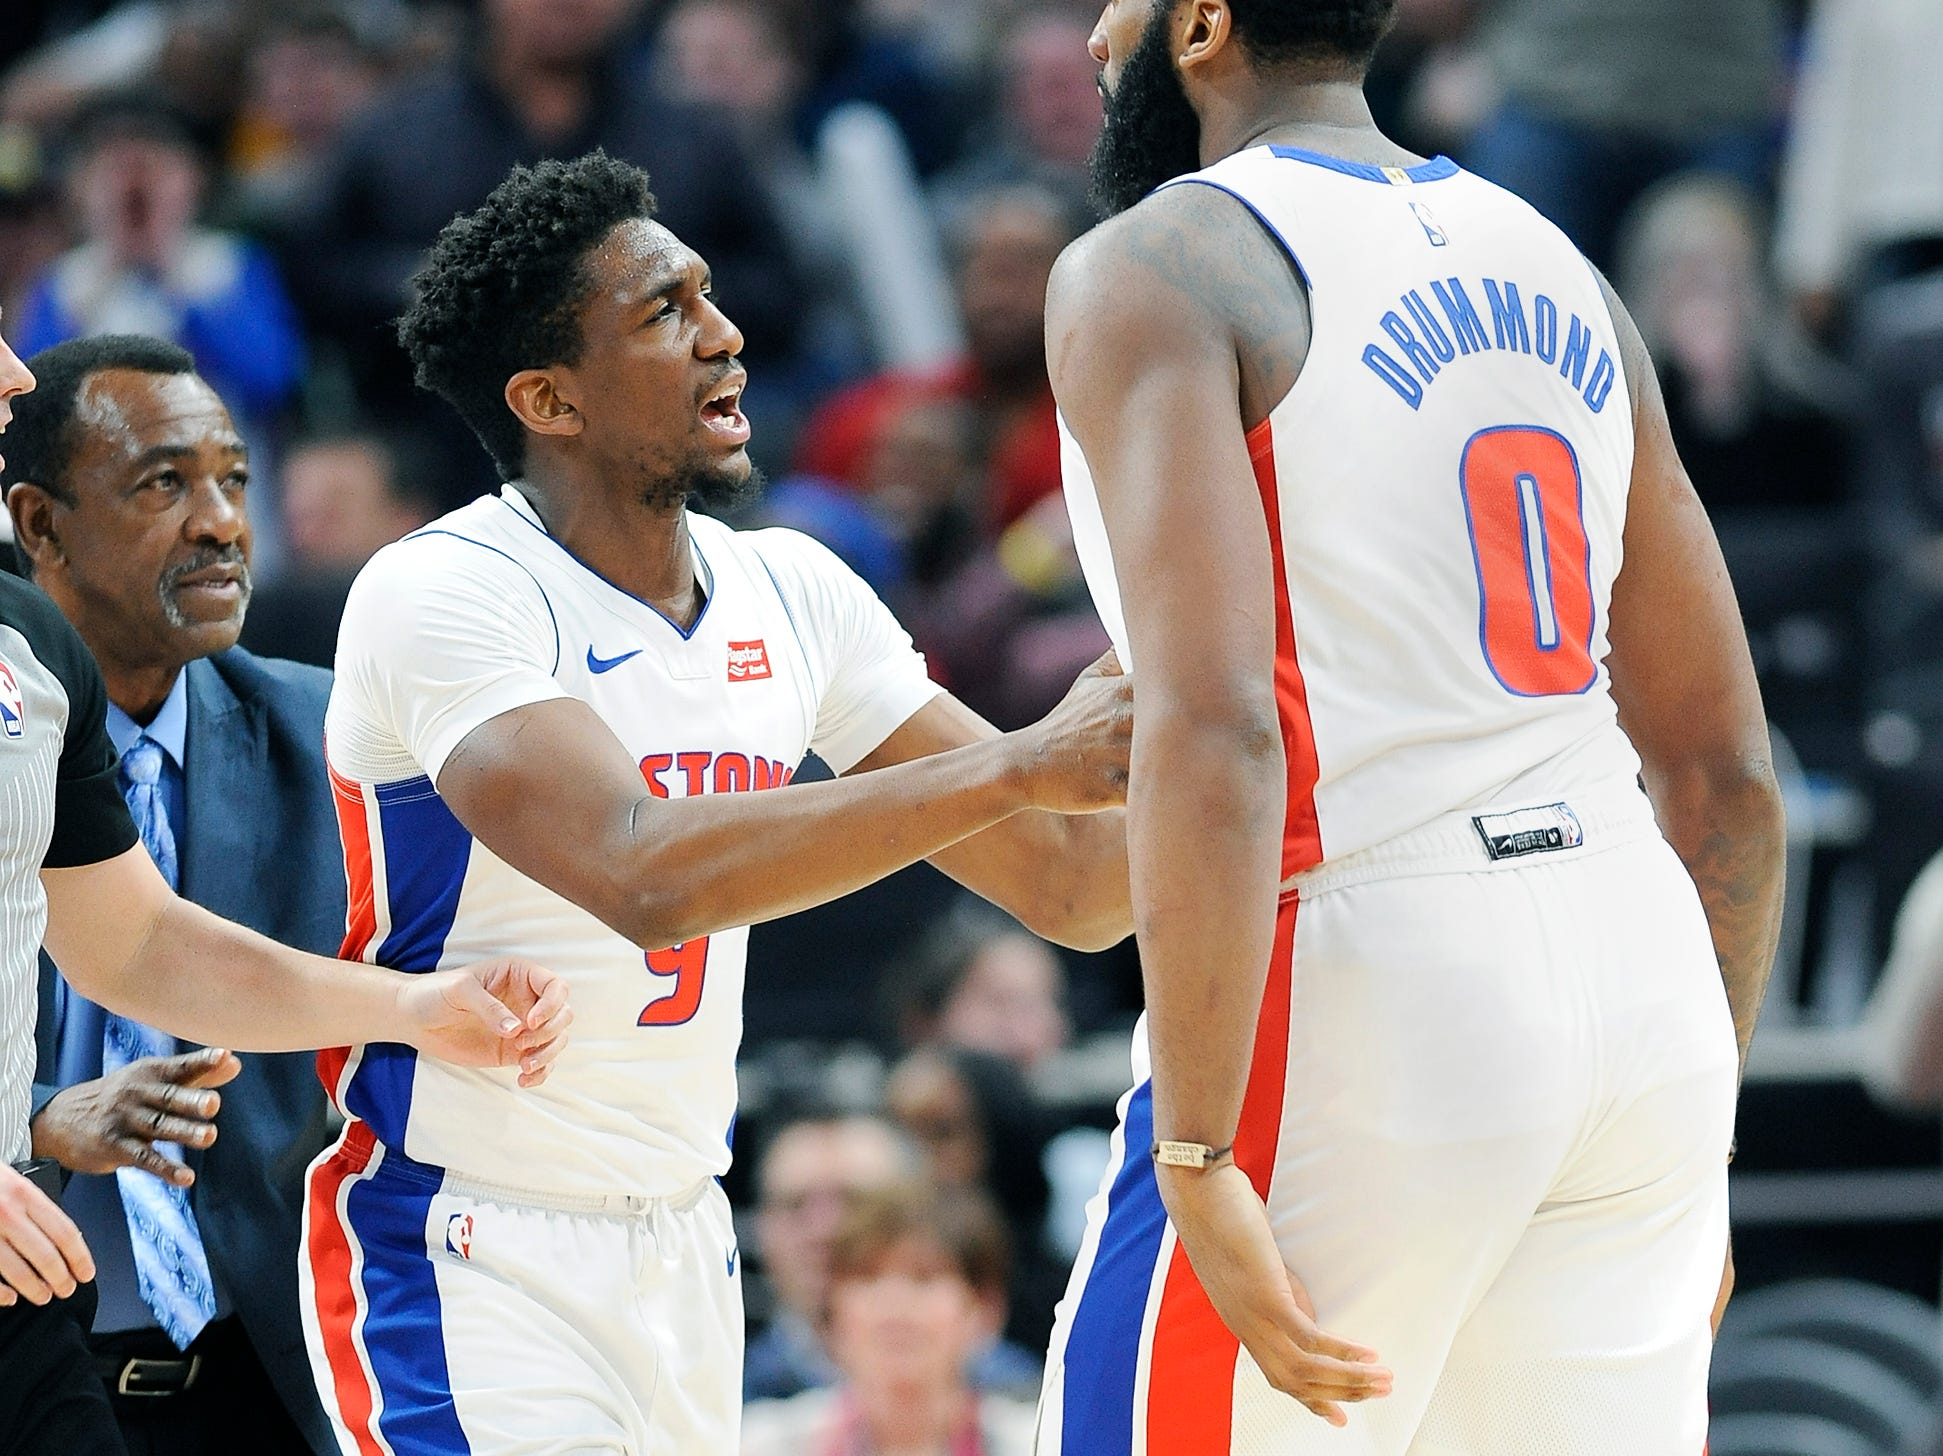 Pistons' Langston Galloway holds Andre Drummond back after he was hit in neck by Timberwolves' Taj Gibson in the fourth quarter.,Gibson received a flagrant 2 foul and was ejected.